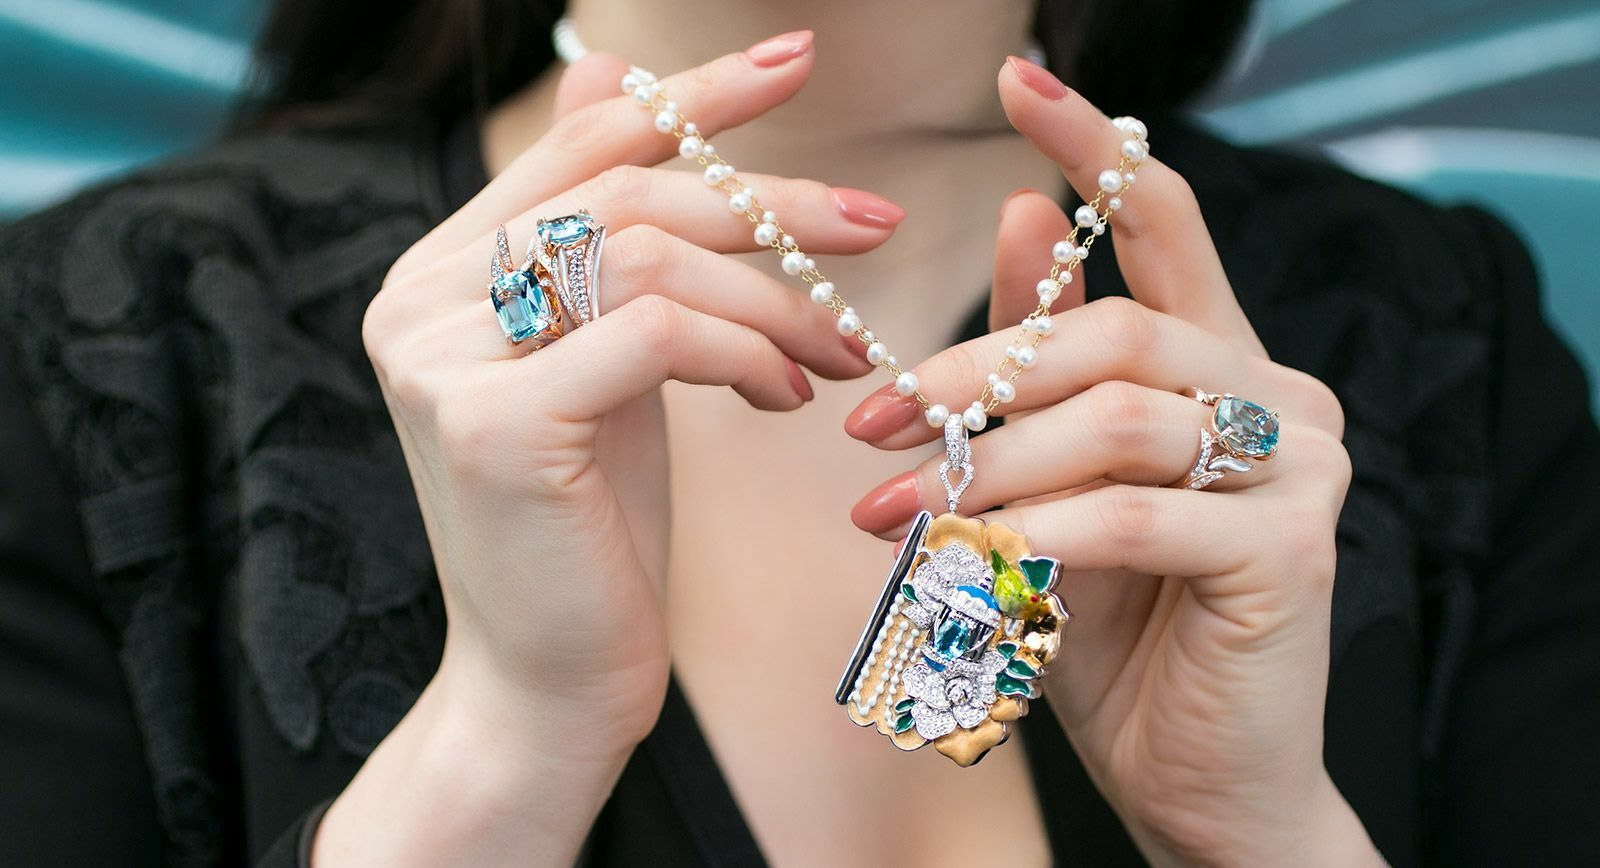 Simone Jewels: The jewellery storyteller presents her latest collection